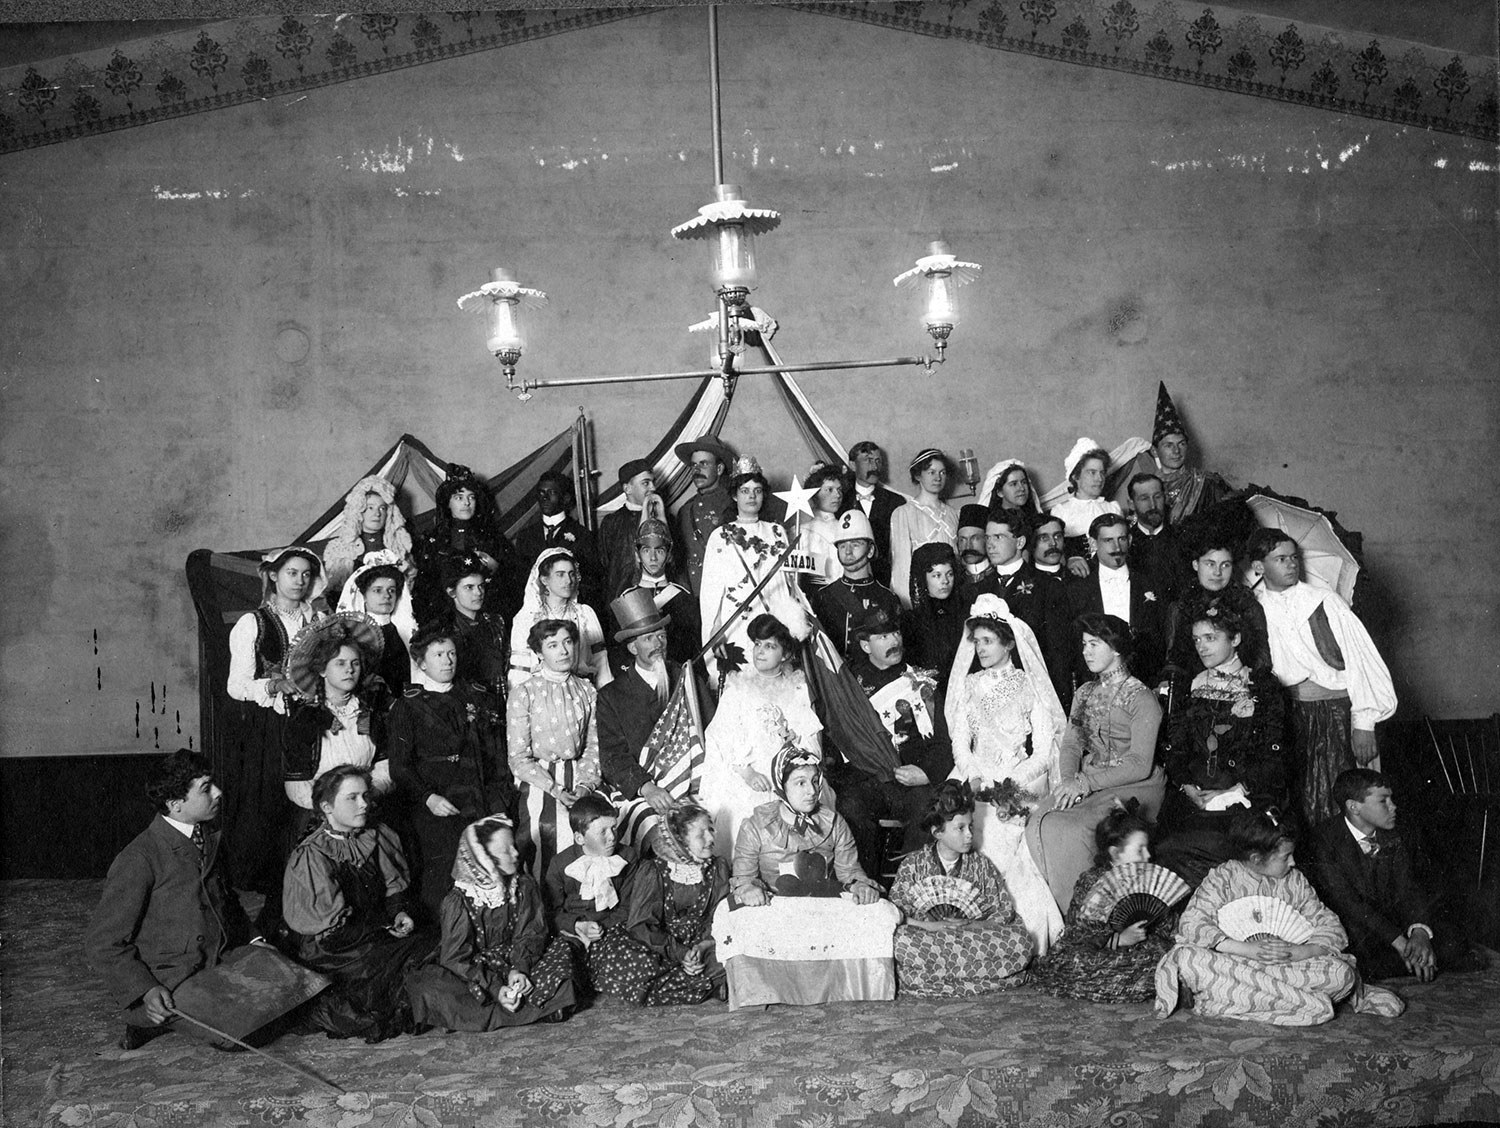 """Photograph taken by Wellington Ashbridge of an amateur play, """"The Happiest Land,"""" at Queen Street East Methodist Church (1902)"""